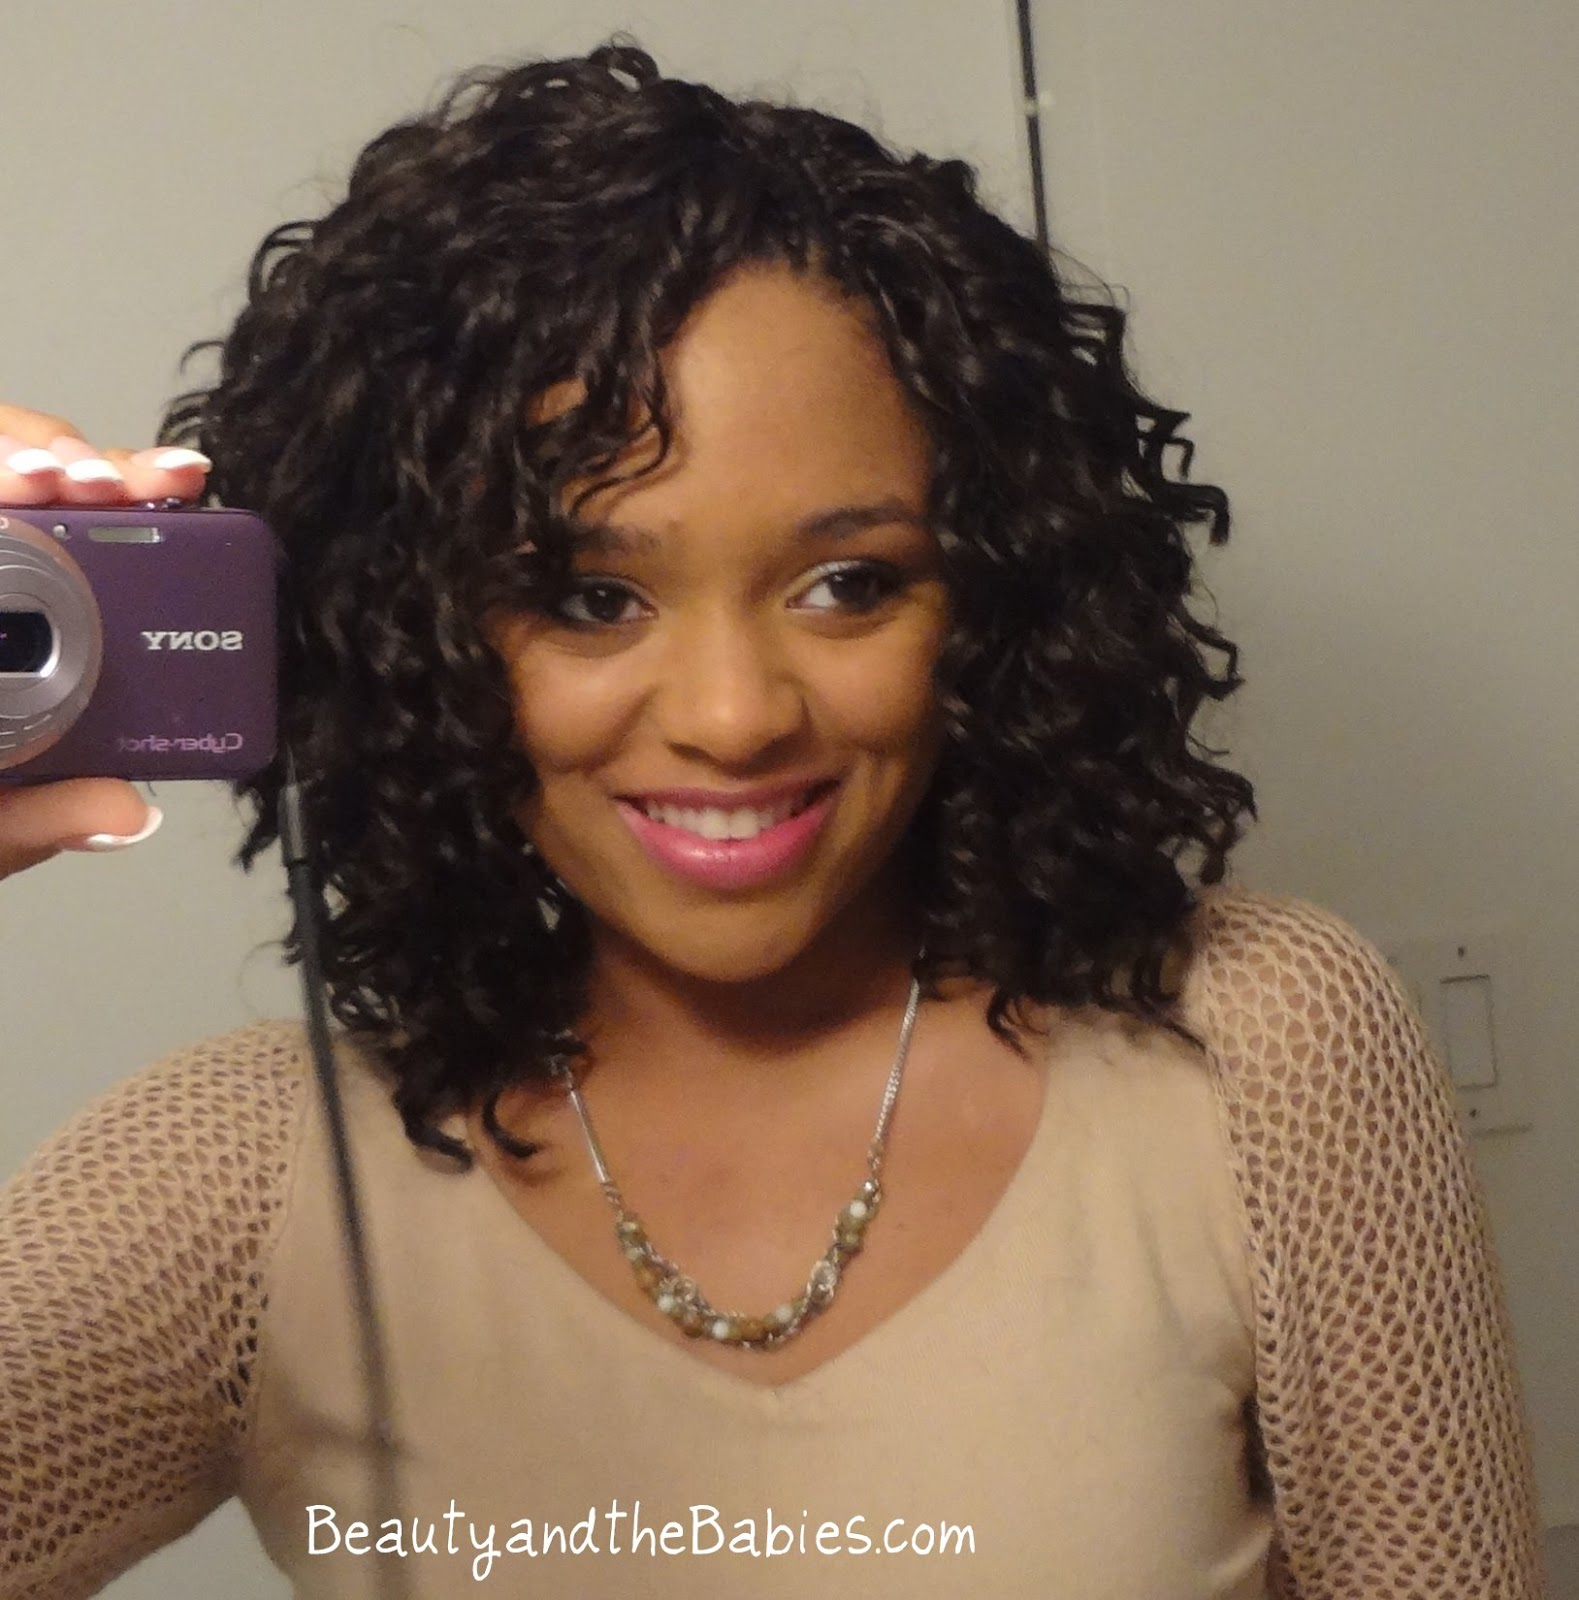 Beauty and the Babies: Crochet Braids - Pic Heavy!